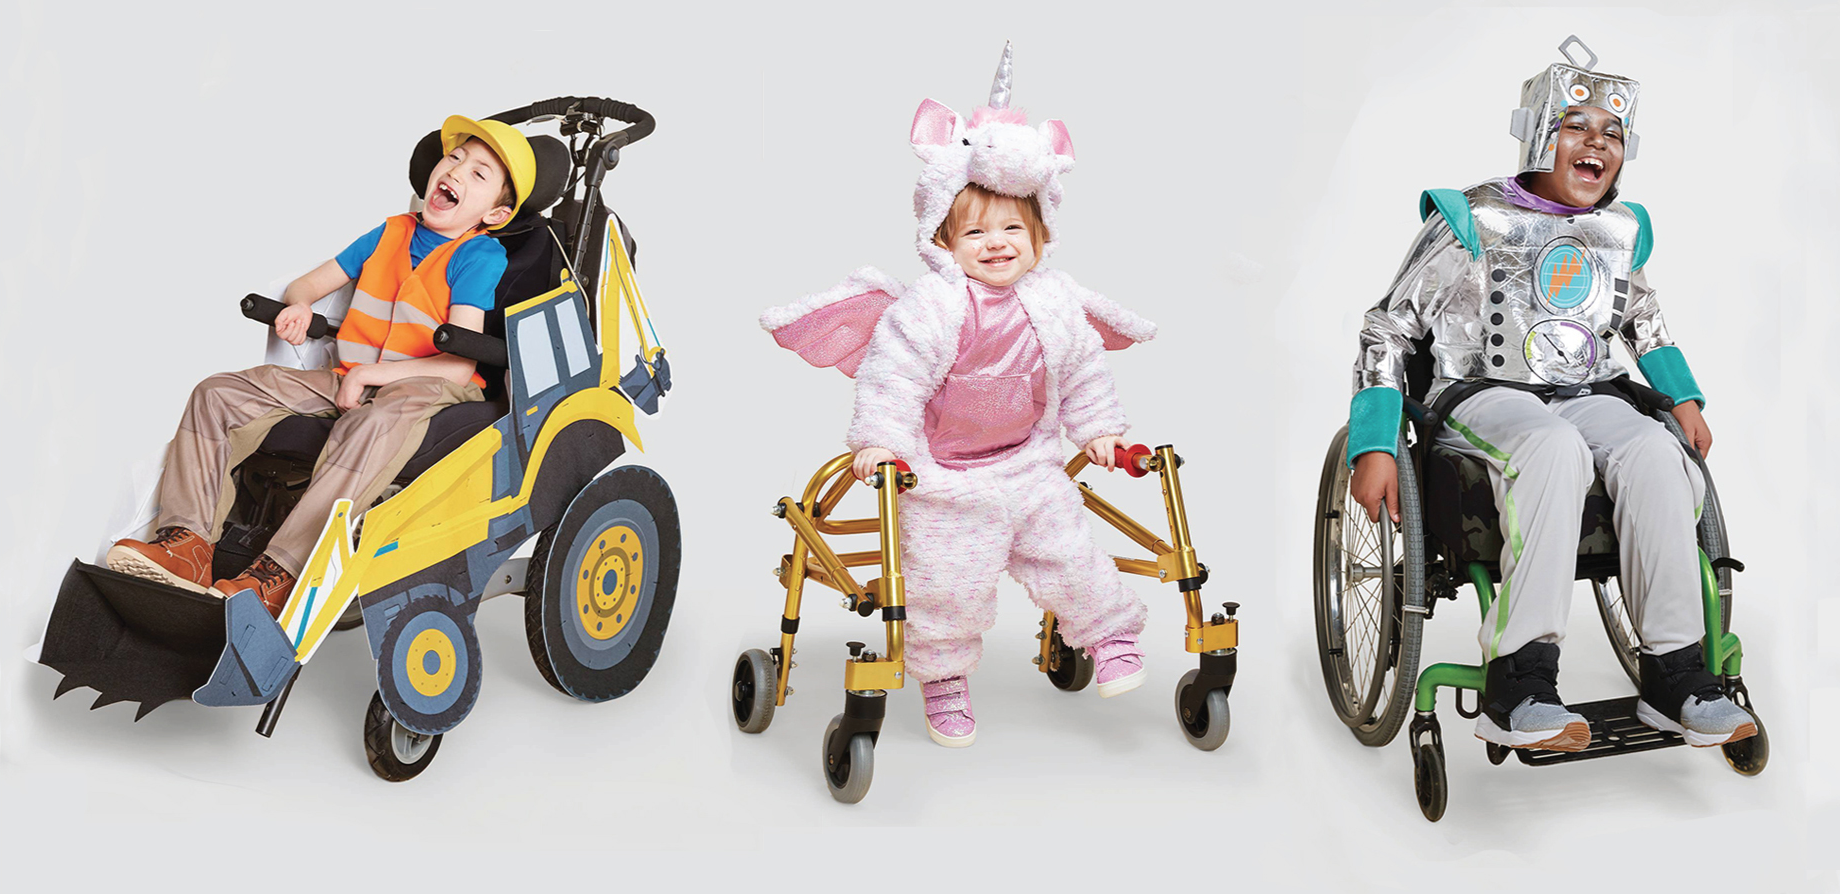 Halloween 2020 Children In Mind Target Gets It Right with These Inclusive Halloween Costumes   NJ